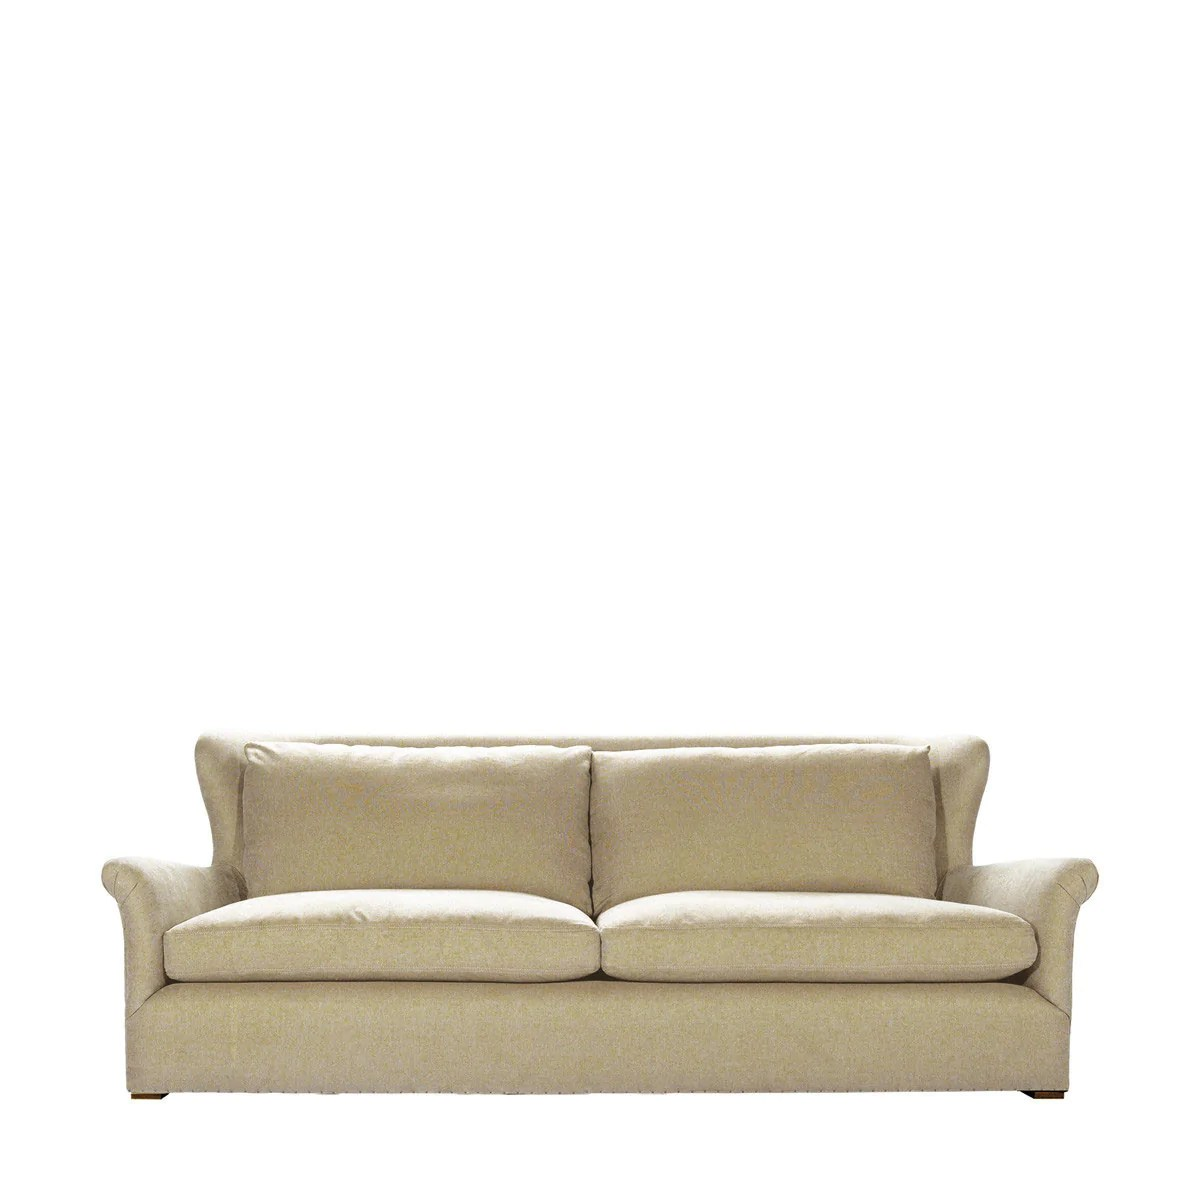 sofa frames ltd mountain ash handy living review curations limited winslow beige linen